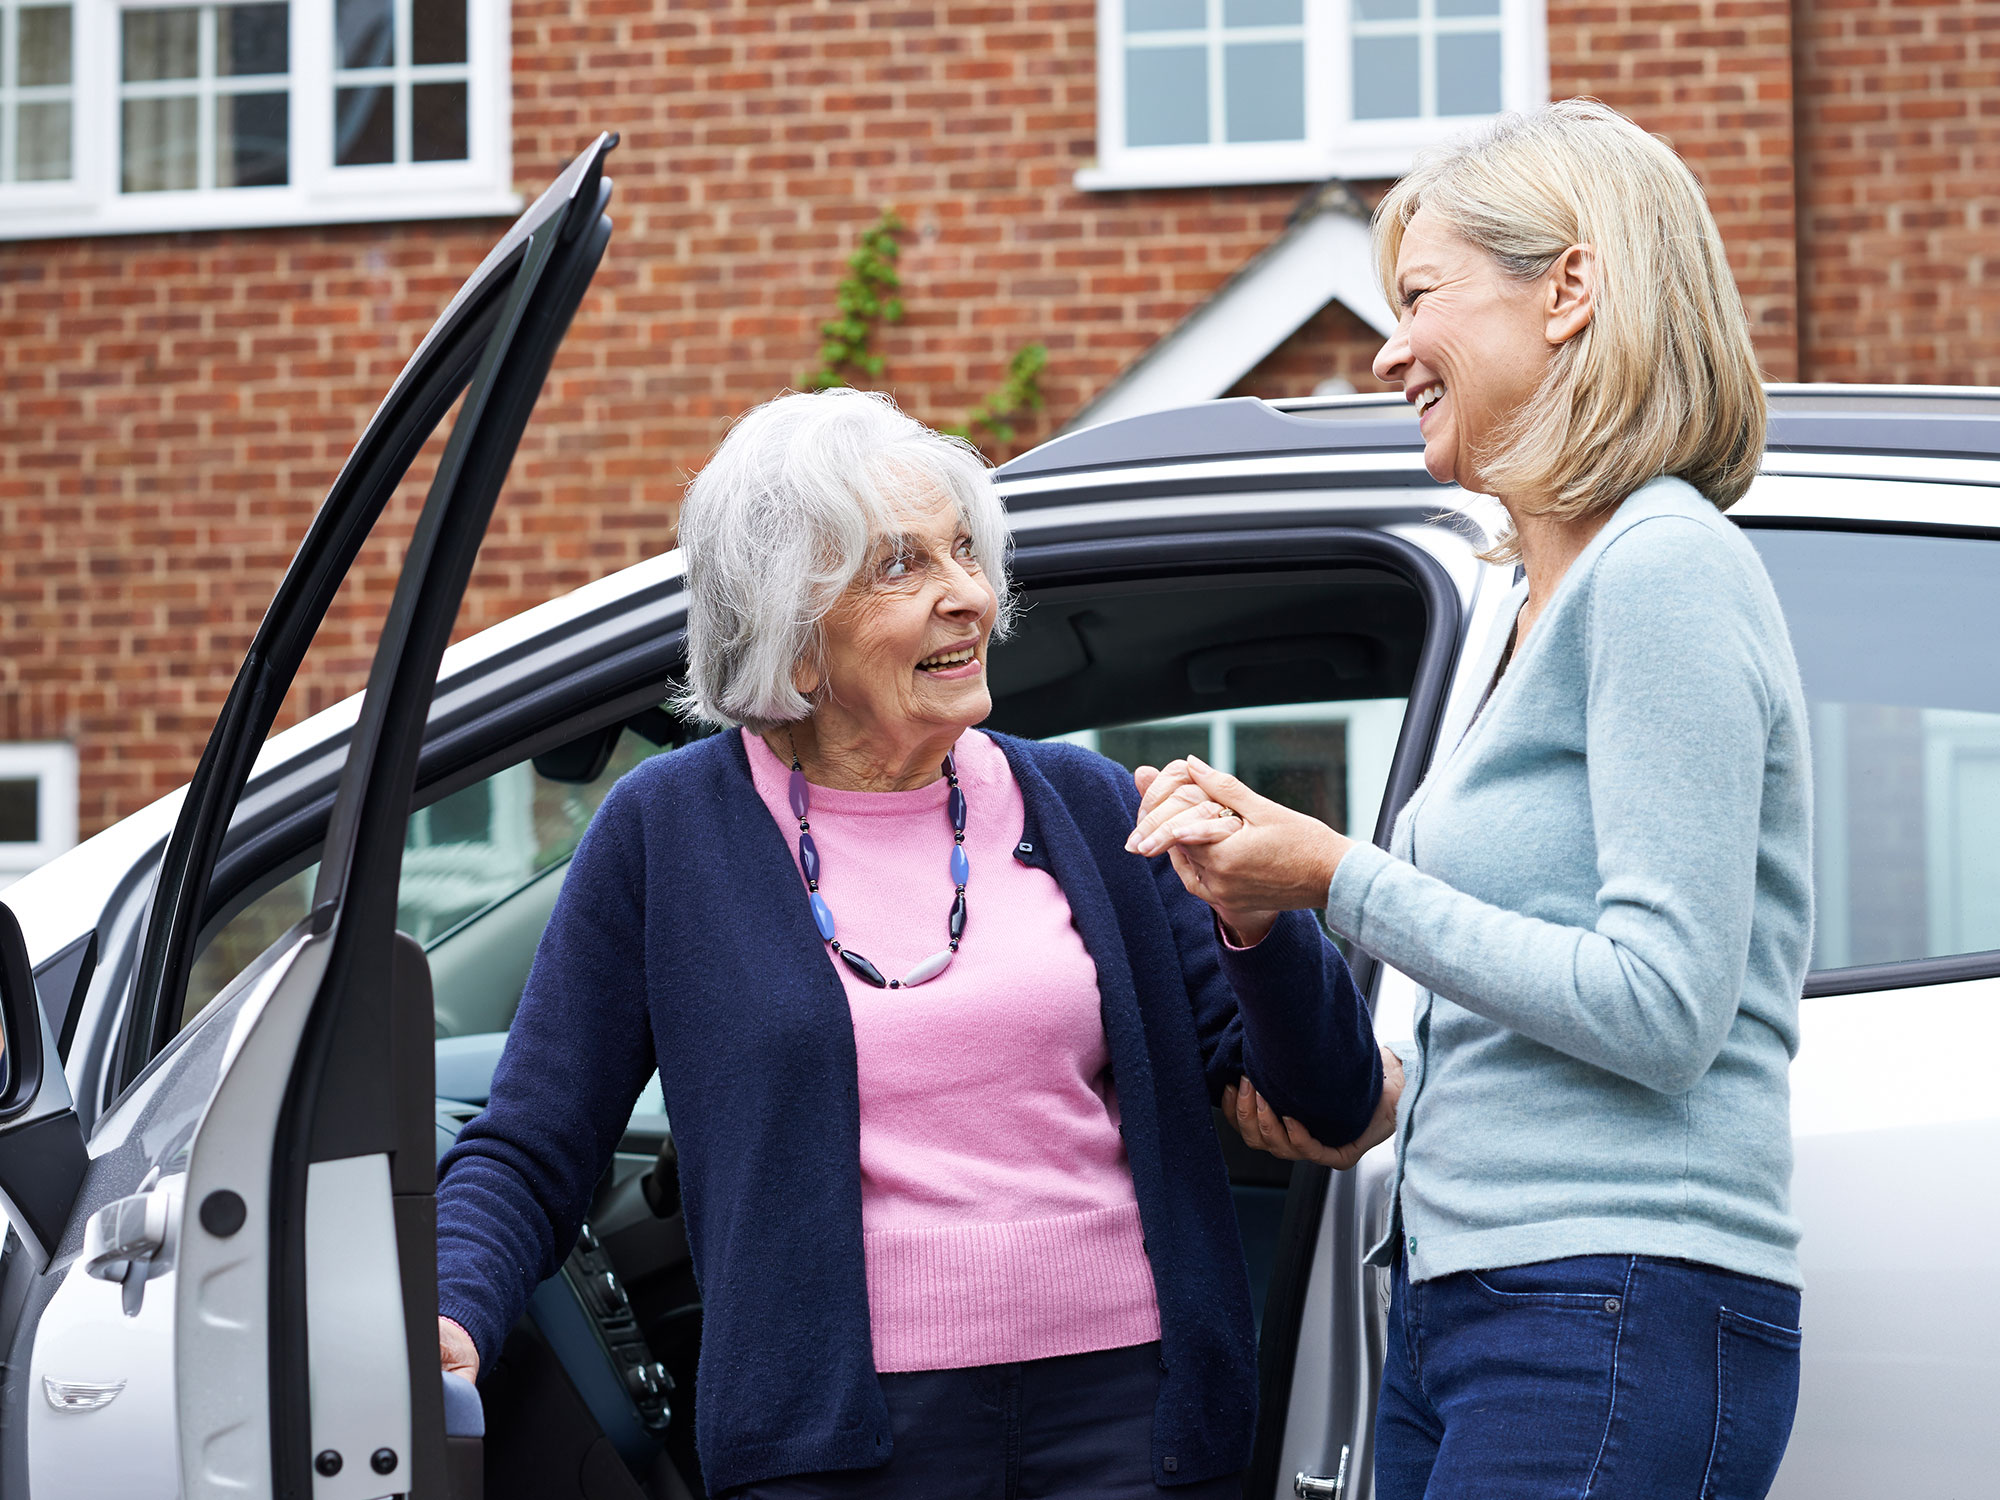 A carer helping an older woman get out the car.